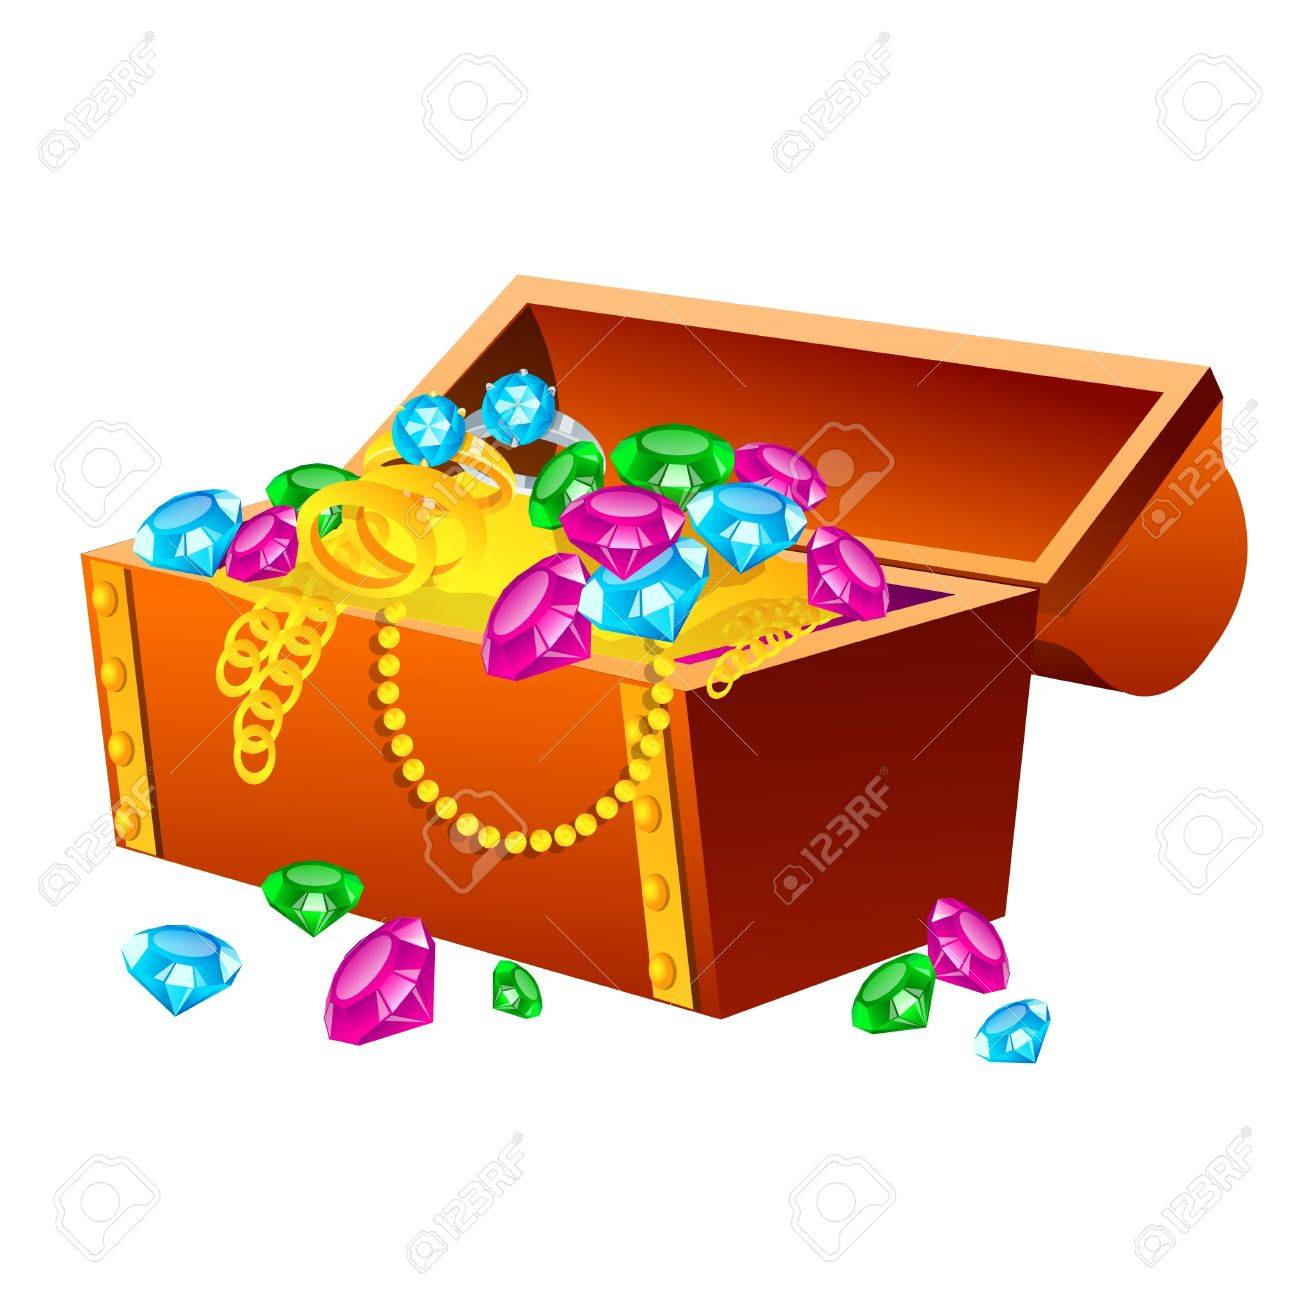 Vector illustration of treasure chest on white background Illustration of a traditional treasure chest with gold coins, jewelry and gems - 22000000